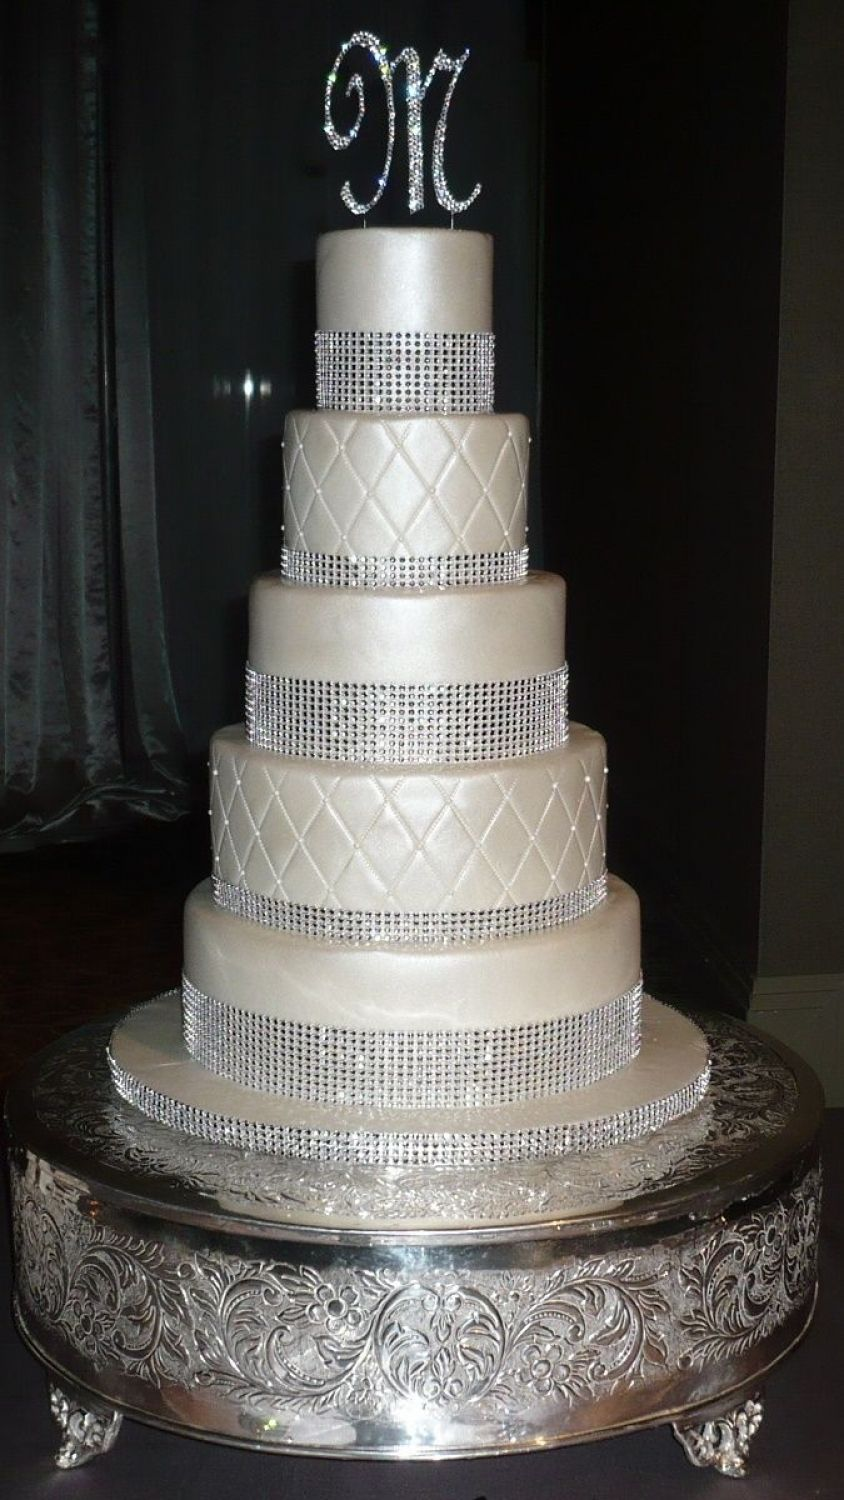 279 Best Wedding Cakes Bling Images On Pinterest Marriage In Wedding Cake With Crystal Decorations Best Inspiration Bling Wedding Cakes Cool Wedding Cakes Wedding Cakes